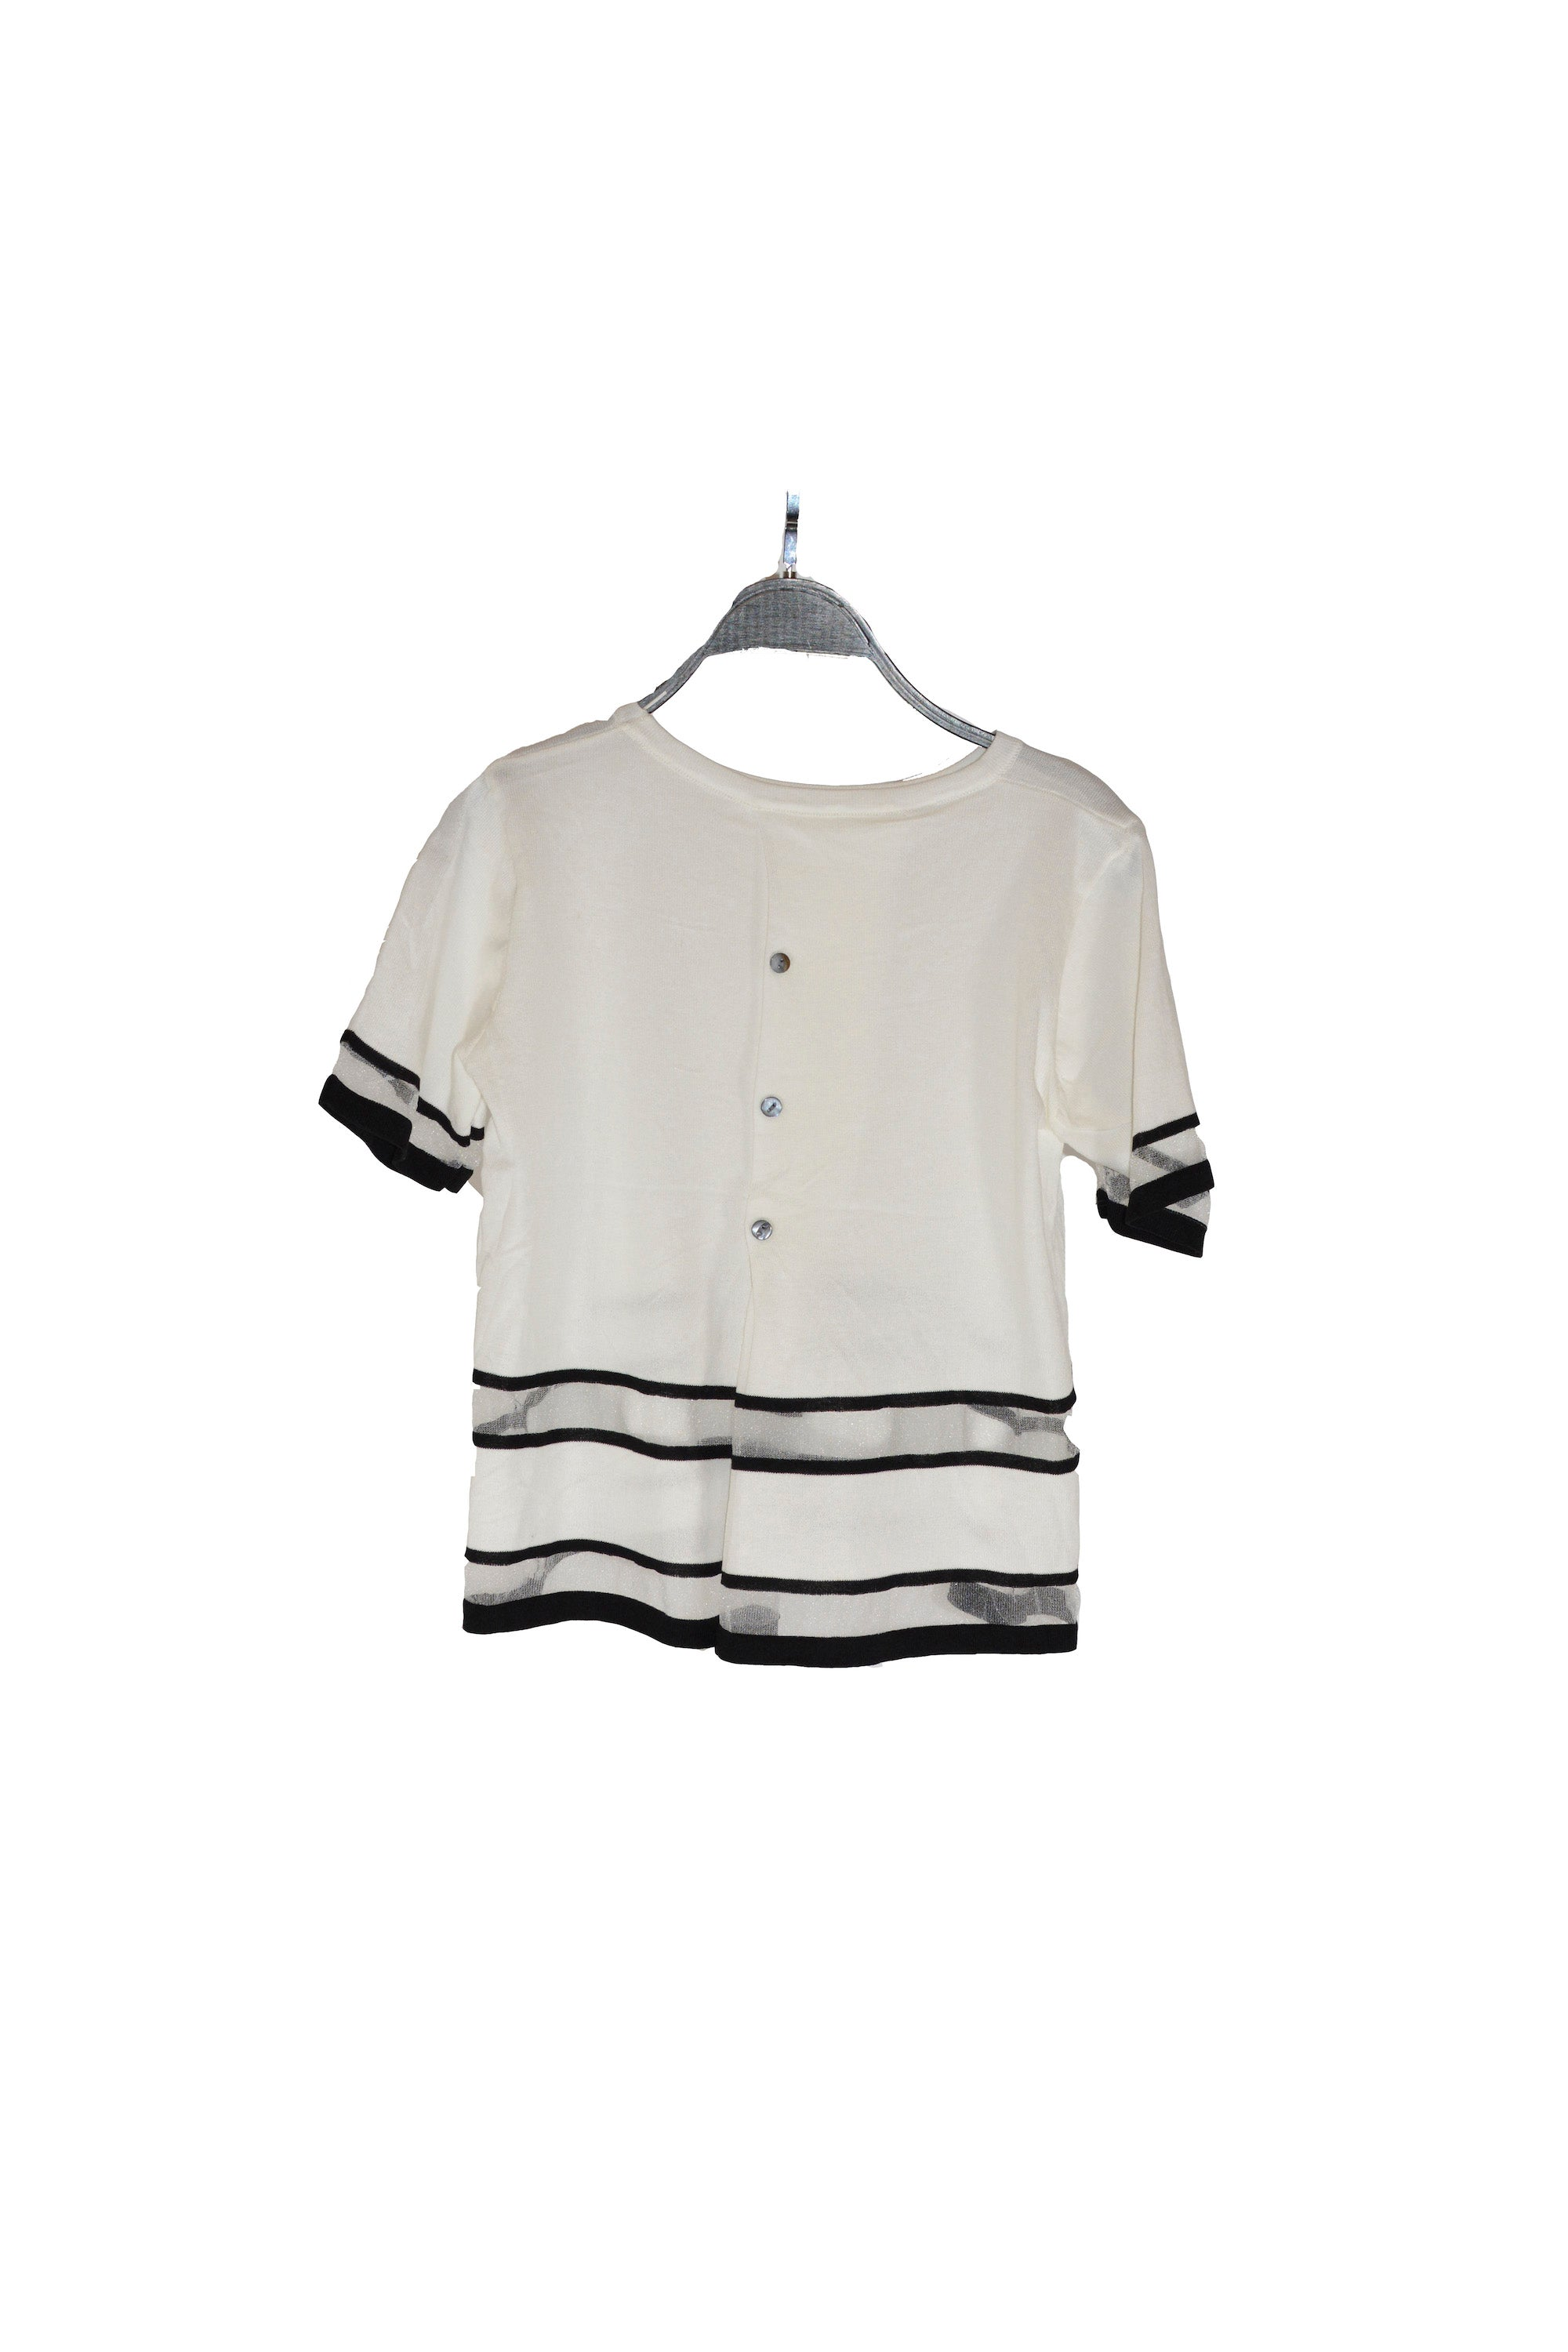 White Short Sleeves Top With Sheer Panel With Round Neckline